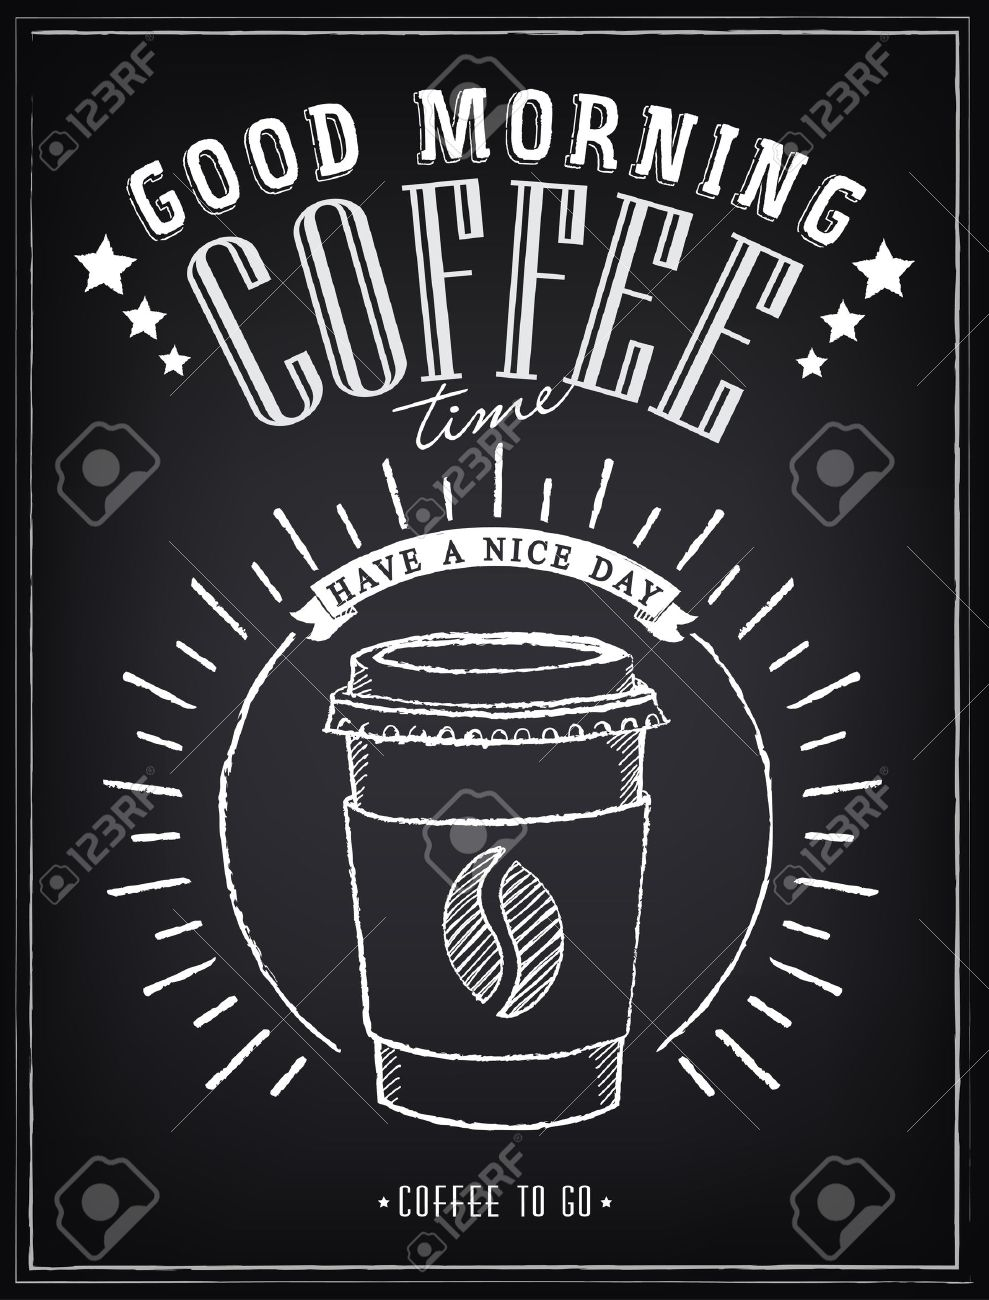 Vintage Poster - Coffee, Freehand drawing on the chalkboard - 35180431